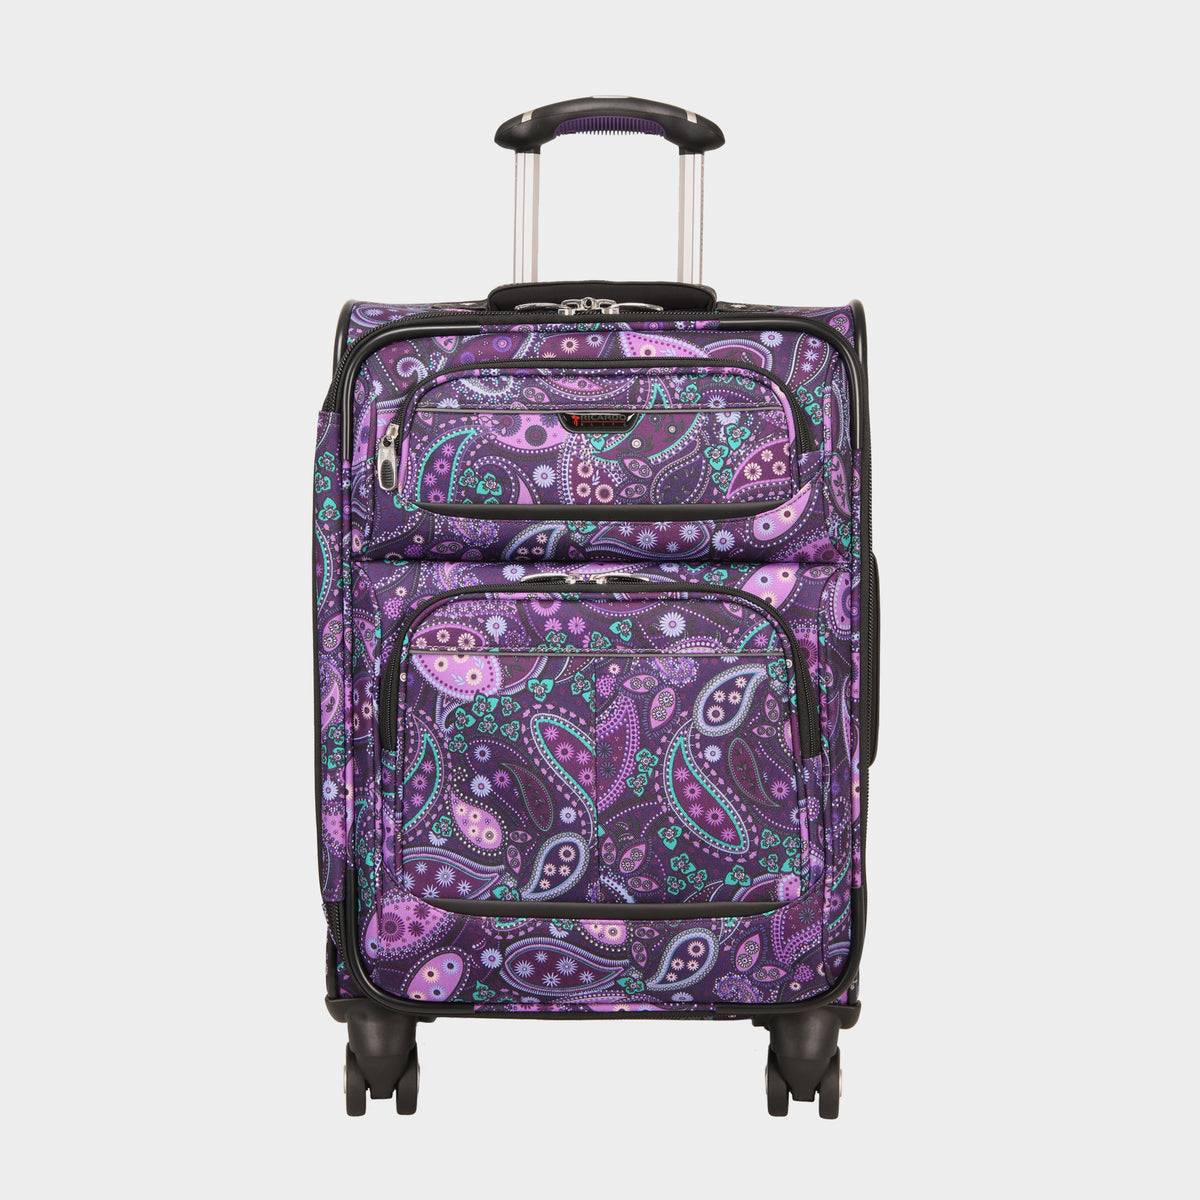 4201ef23c Carry-On Mar Vista 20-Inch Carry-On Suitcase in Purple Paisley Front ...